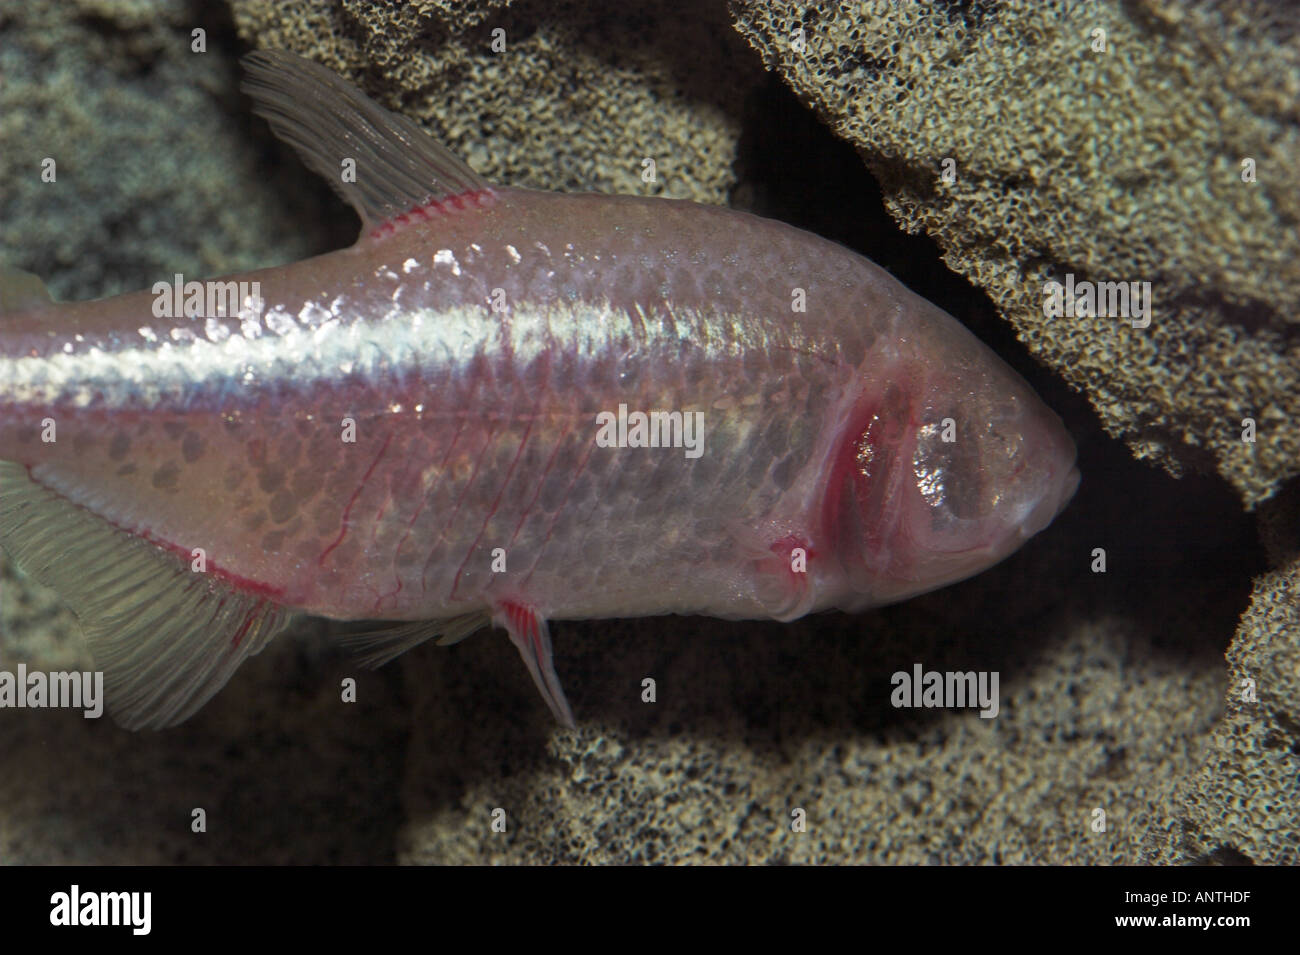 BLIND CAVE FISH Astyanax mexicanus - Stock Image